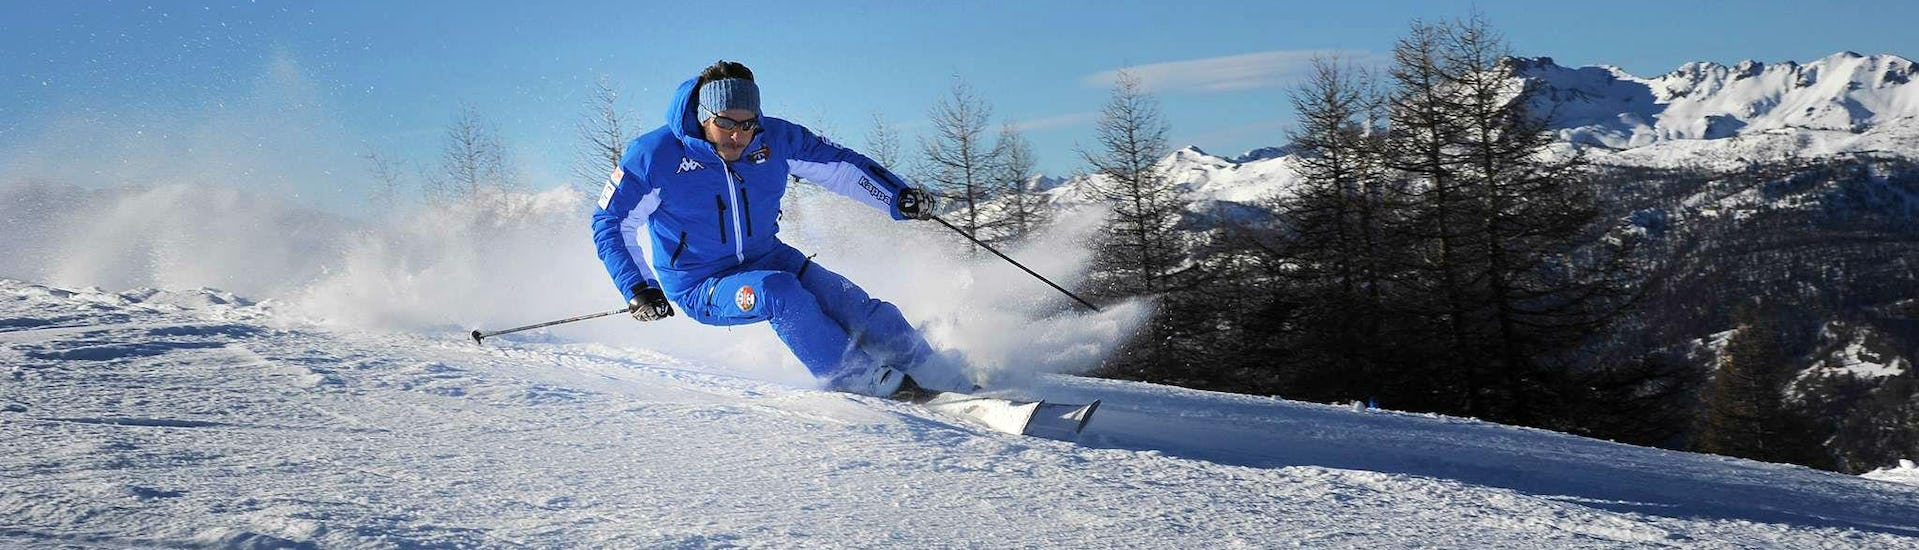 A ski instructor from the ski school Scuola di Sci Olimpionica in Sestriere is demonstrating the correct carving technique during one of the Ski Lessons for Adults - Beginner.